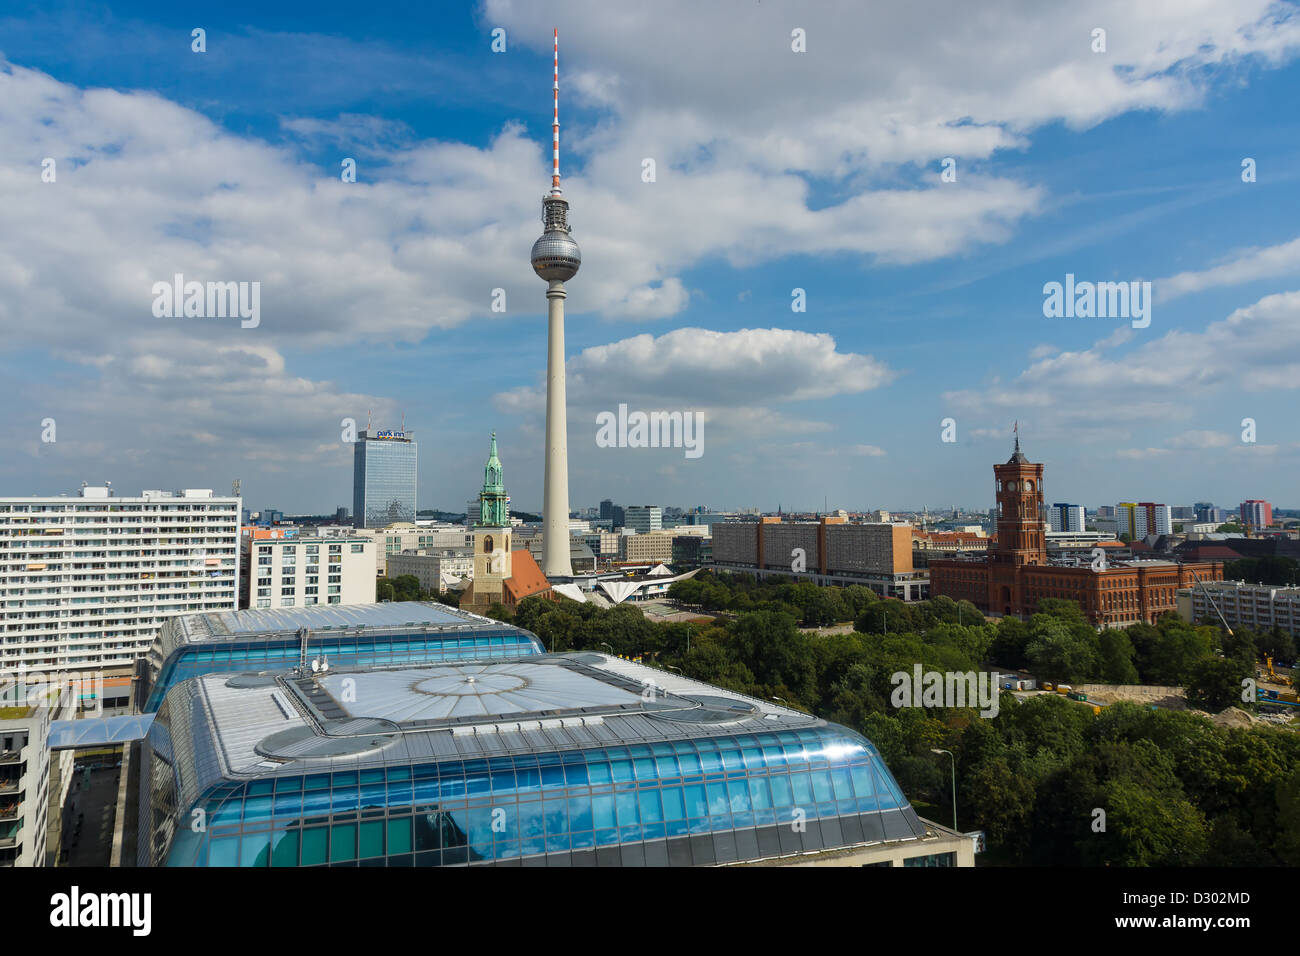 St. Mary's Church, the Berlin Television Tower, hotels Park Inn, bird's-eye view and the Rotes Rathaus - Stock Image